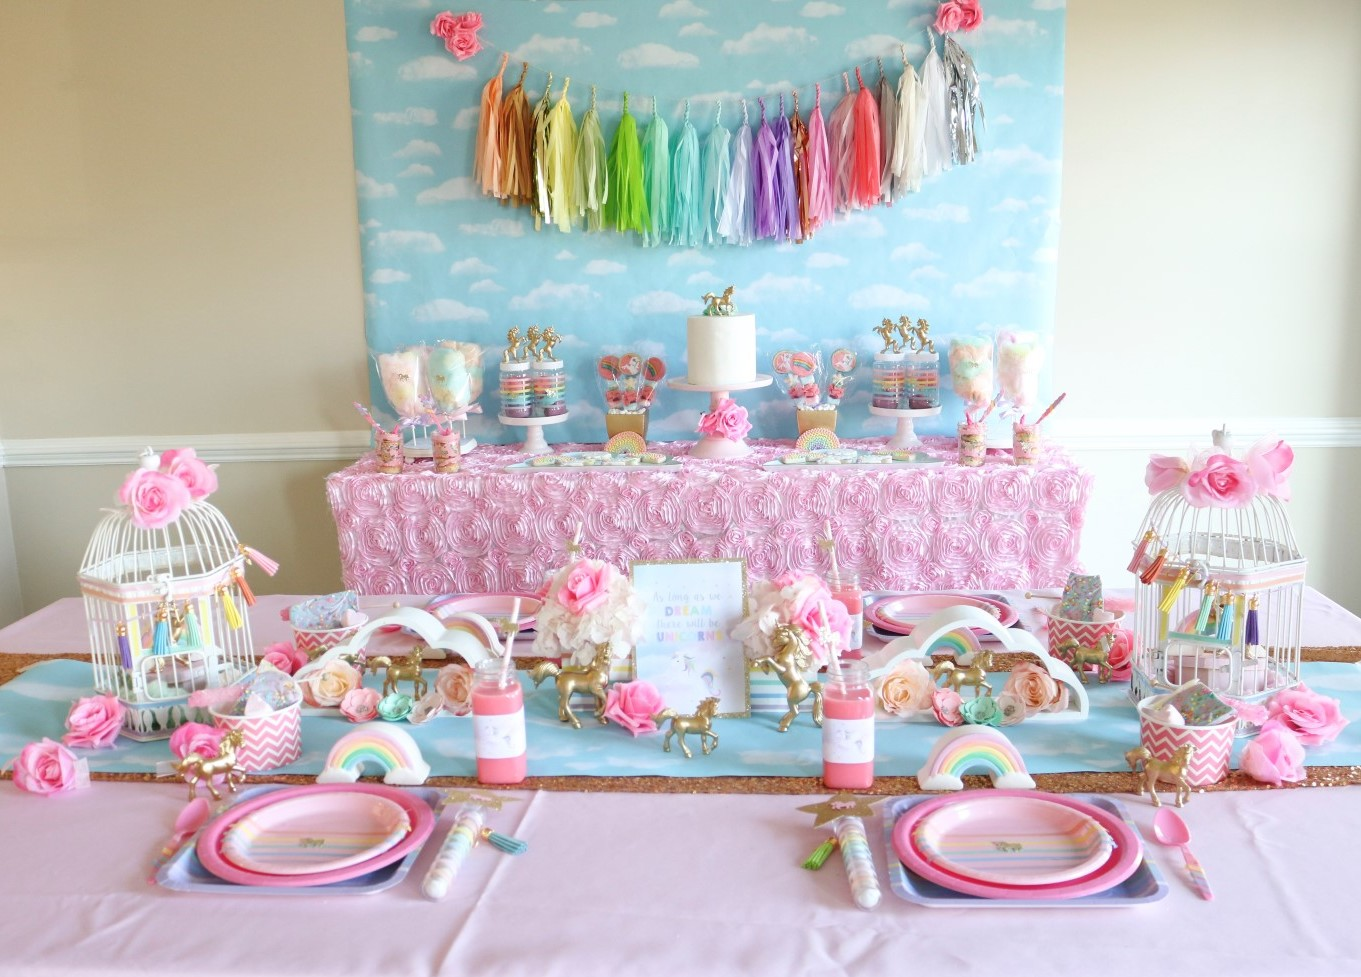 How To Host A Dreamy Rainbows And Unicorns Party